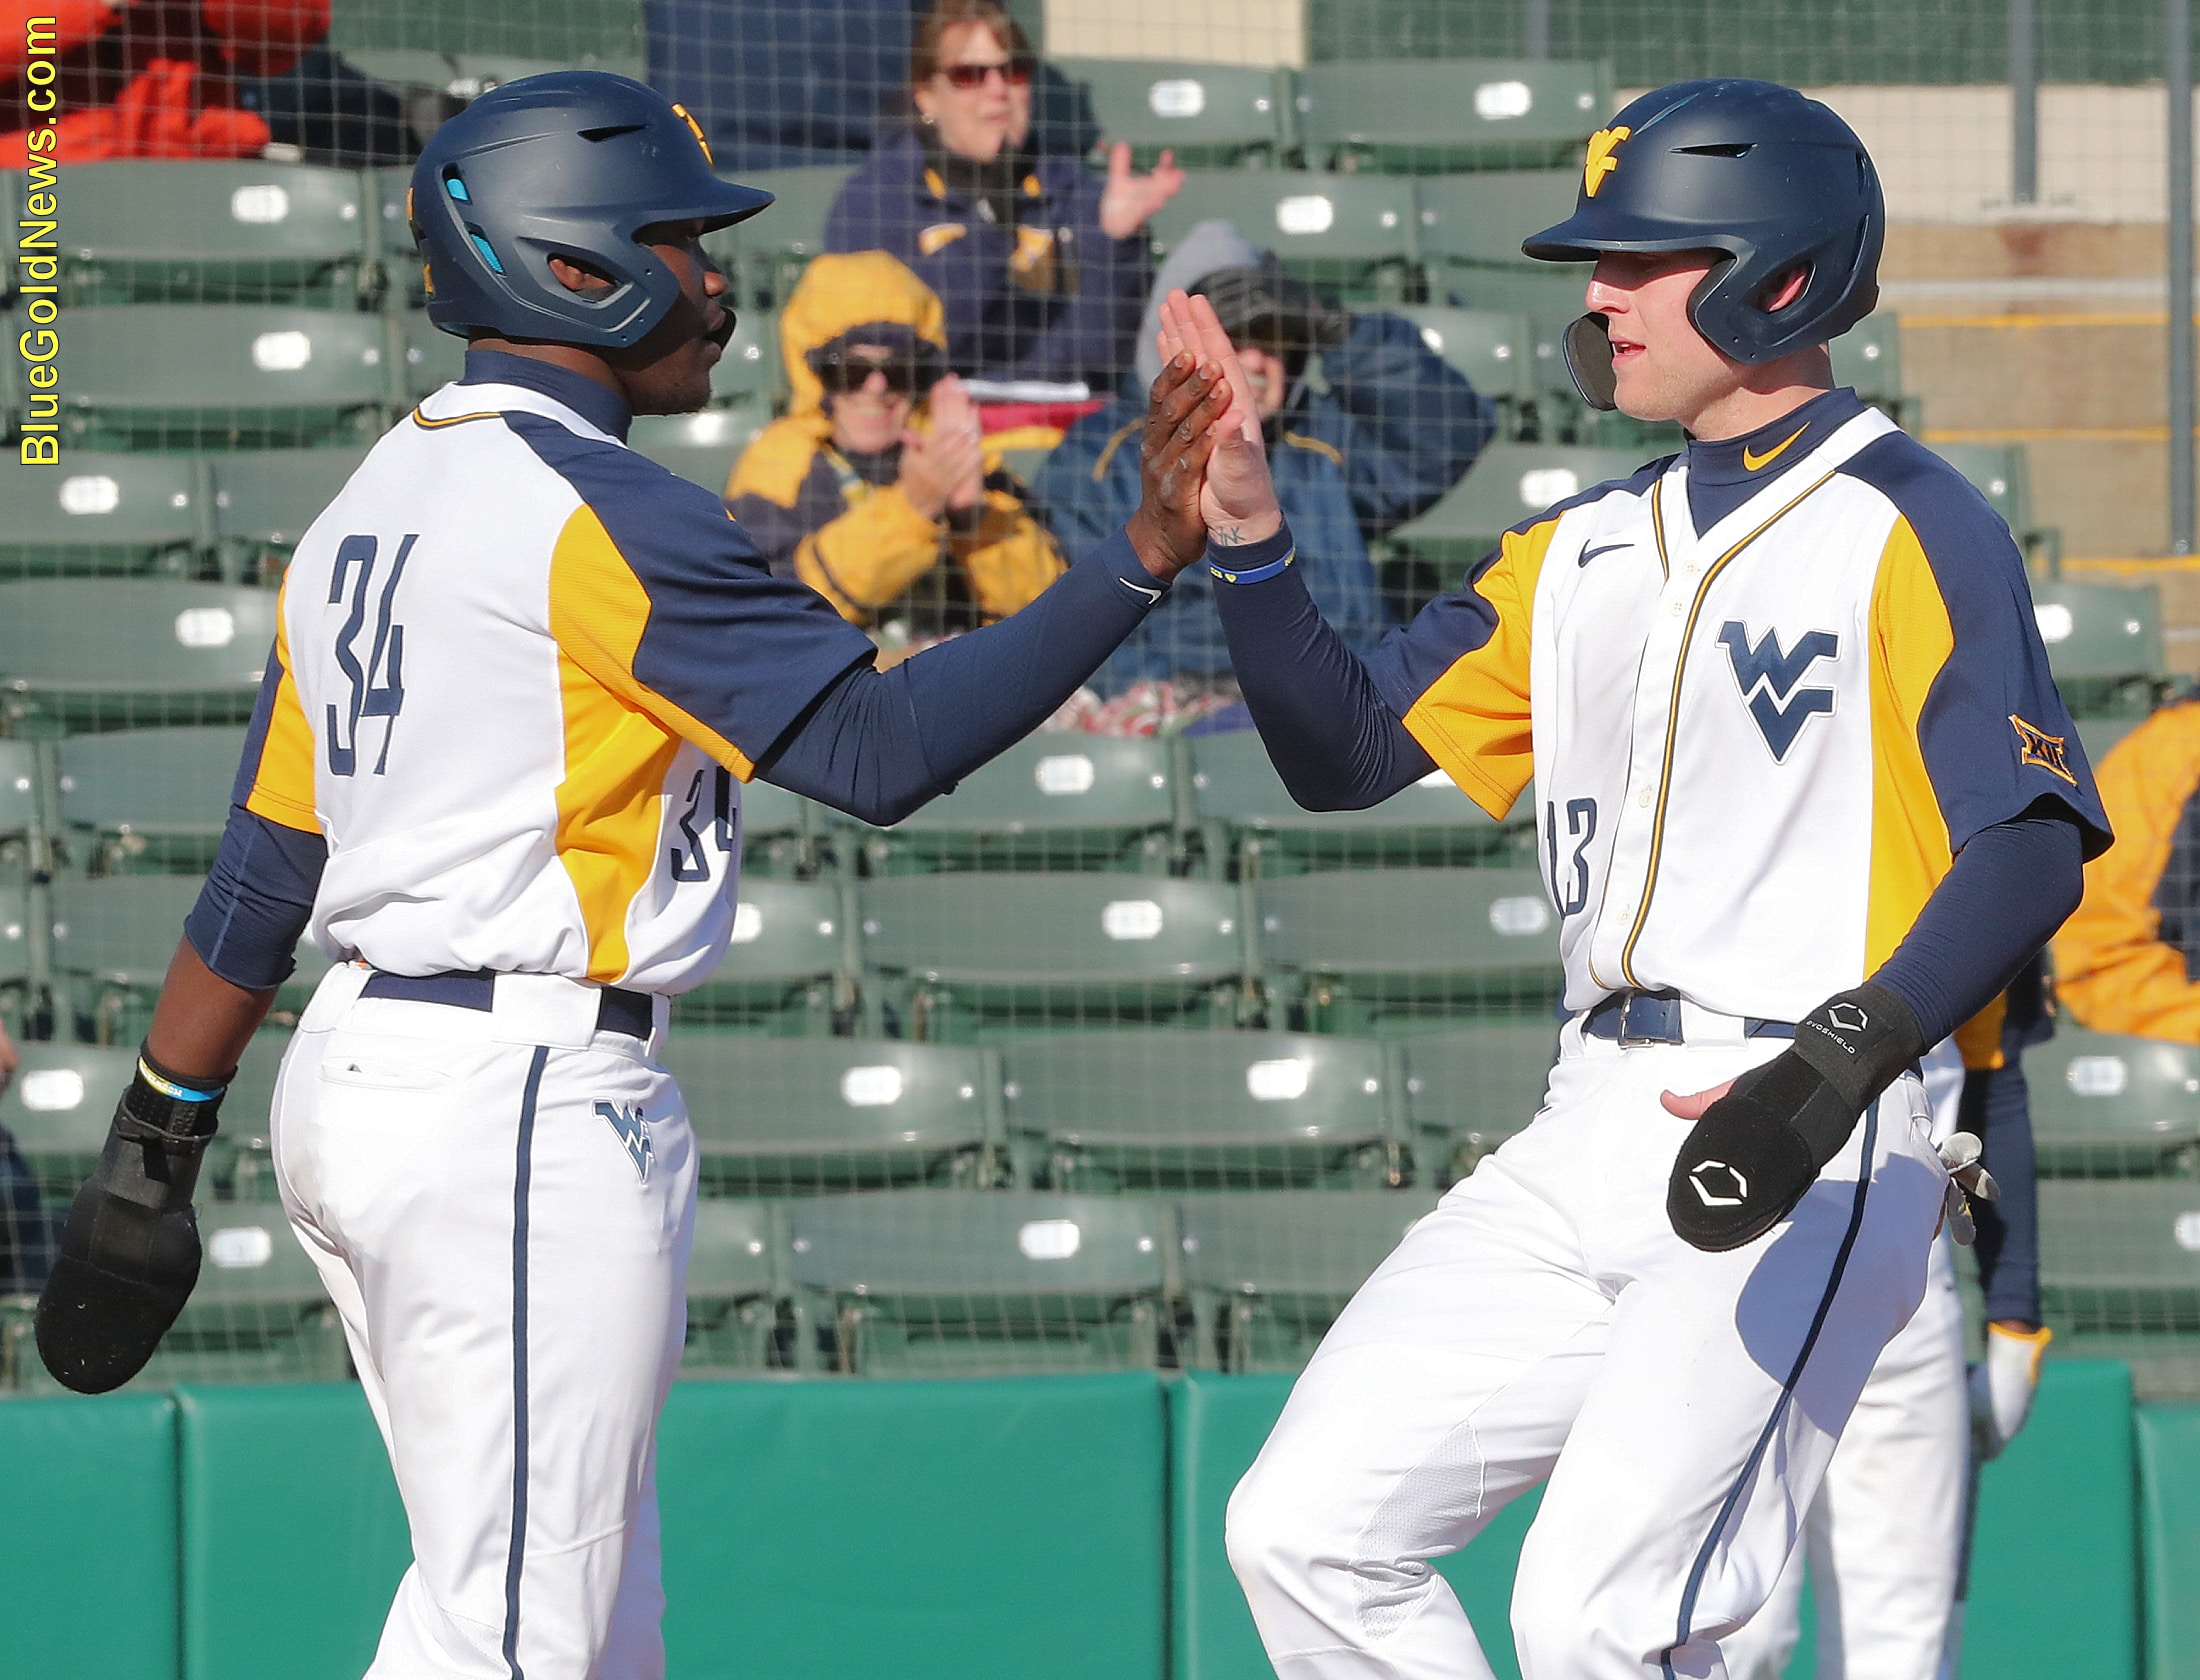 West Virginia catcher Paul McIntosh (34) greets Kevin Brophy (13) at the plate